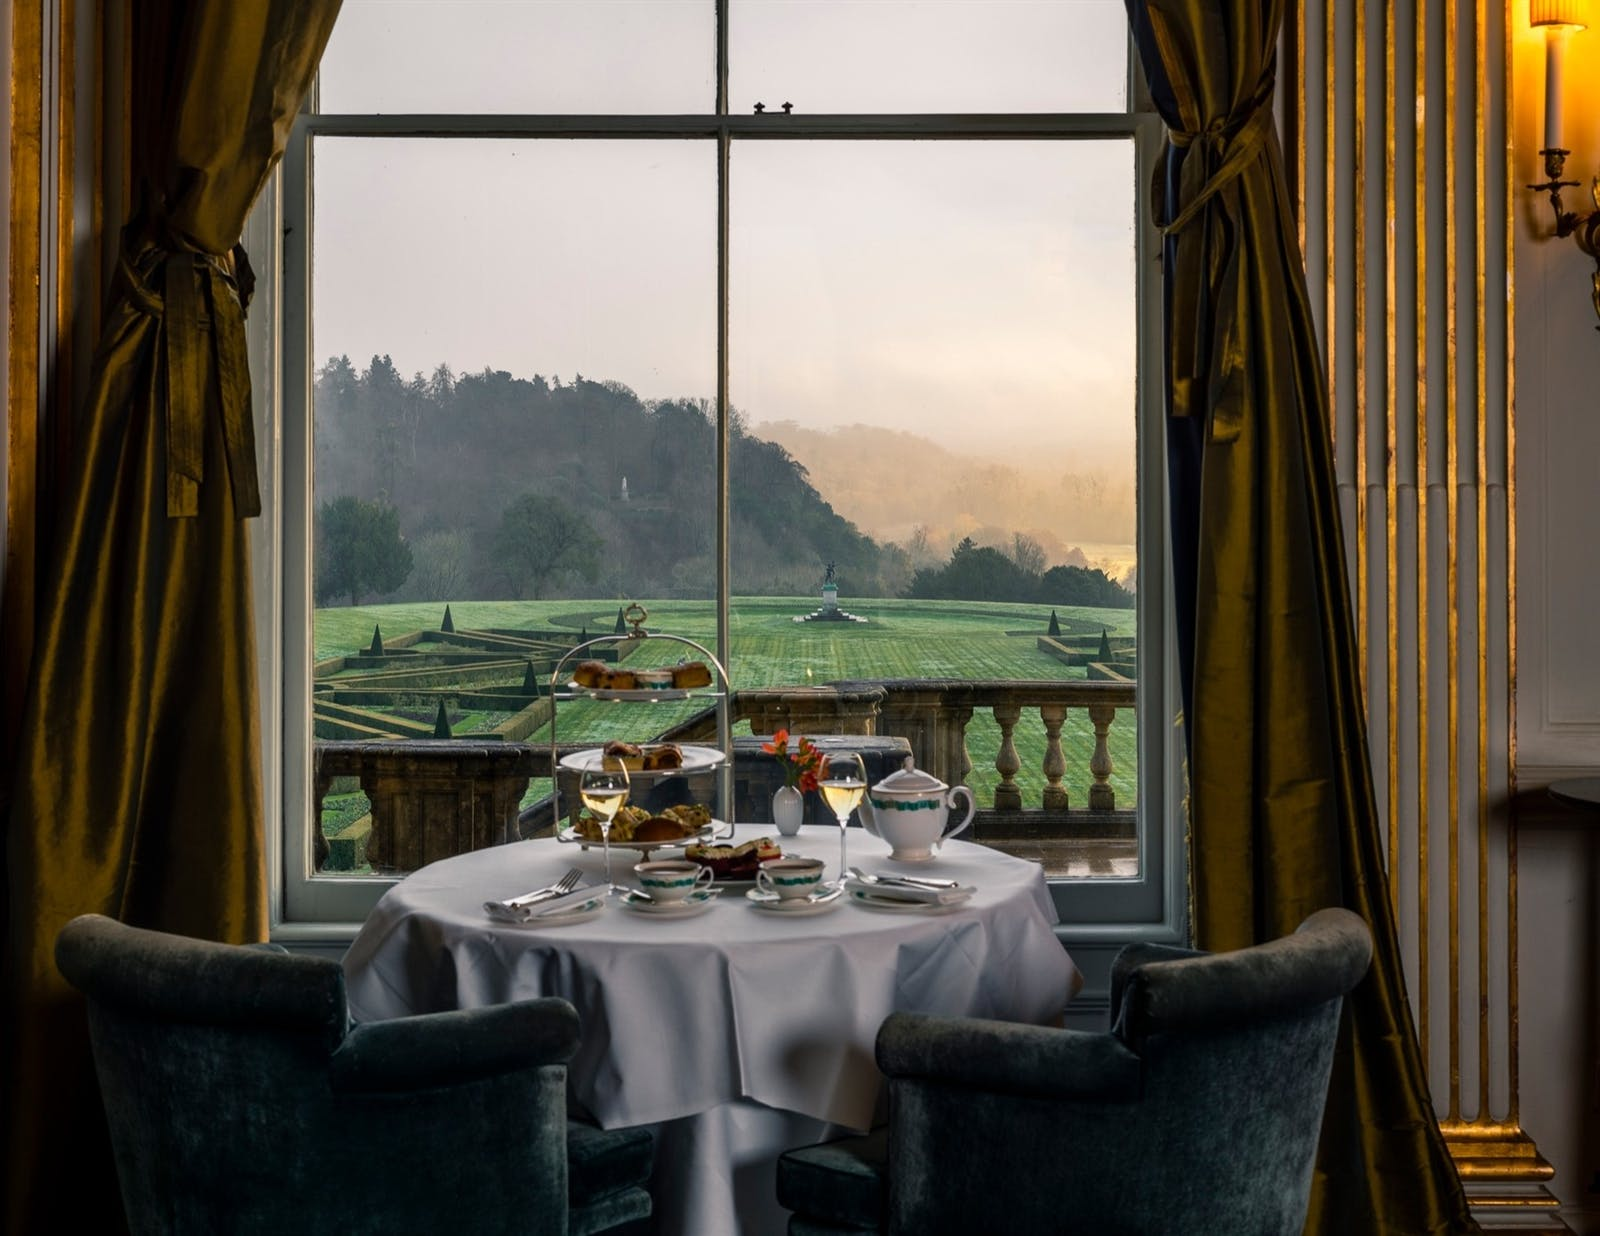 Dining at Cliveden Taplow, Berkshire, England